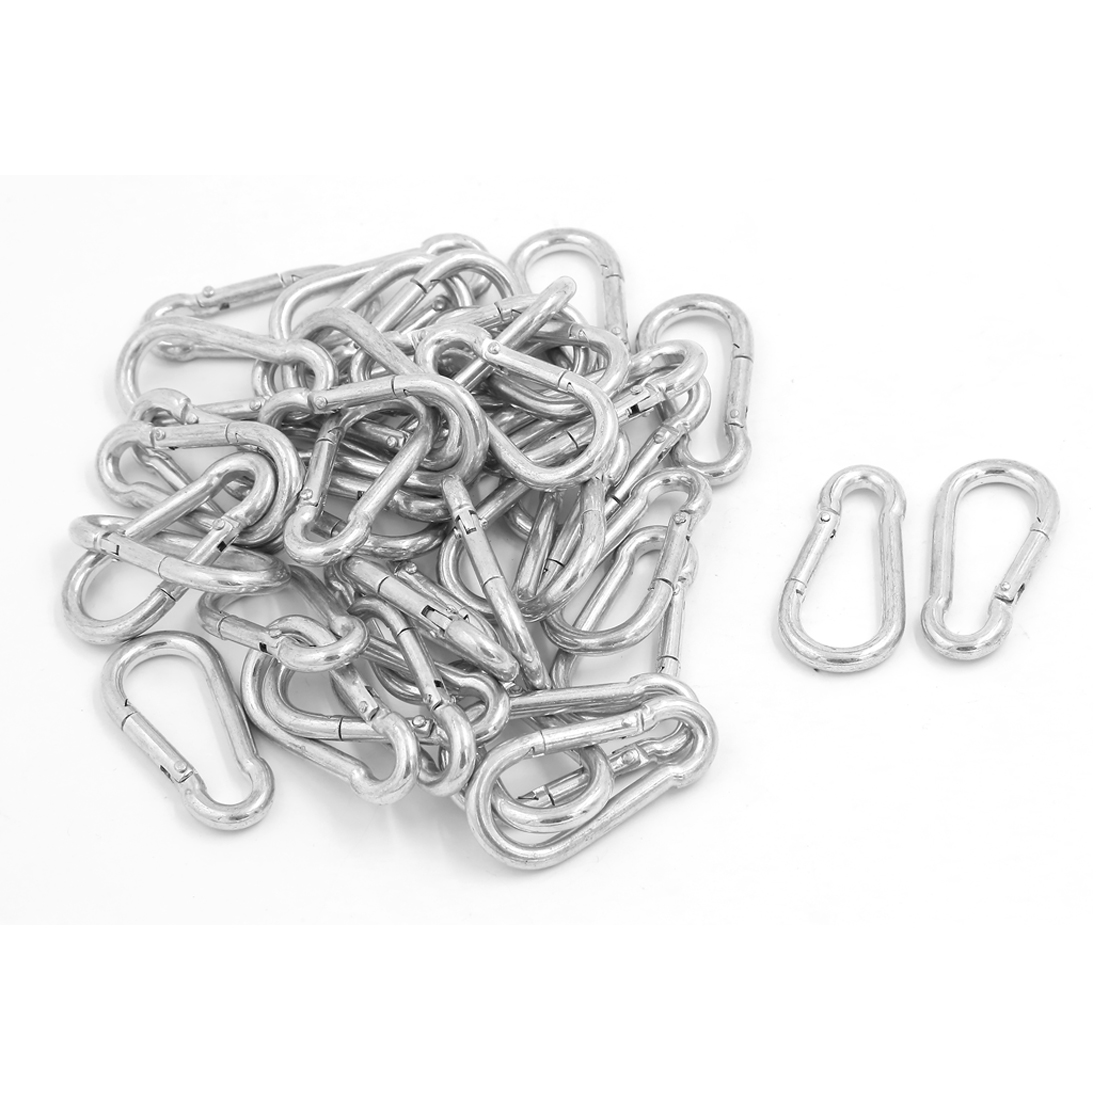 Outdoor Hiking Spring Clip Snap Aluminum Carabiner Hook Keychain 40pcs